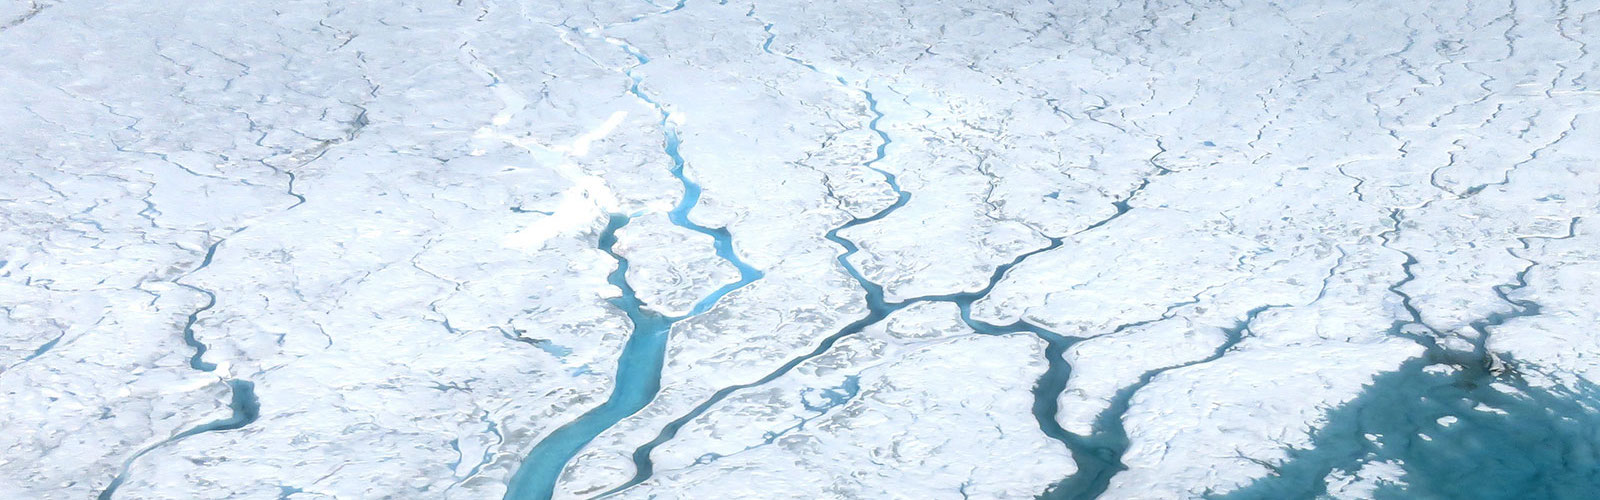 slide 4 - Photo of meltwater rivers on Greenland's ice sheet